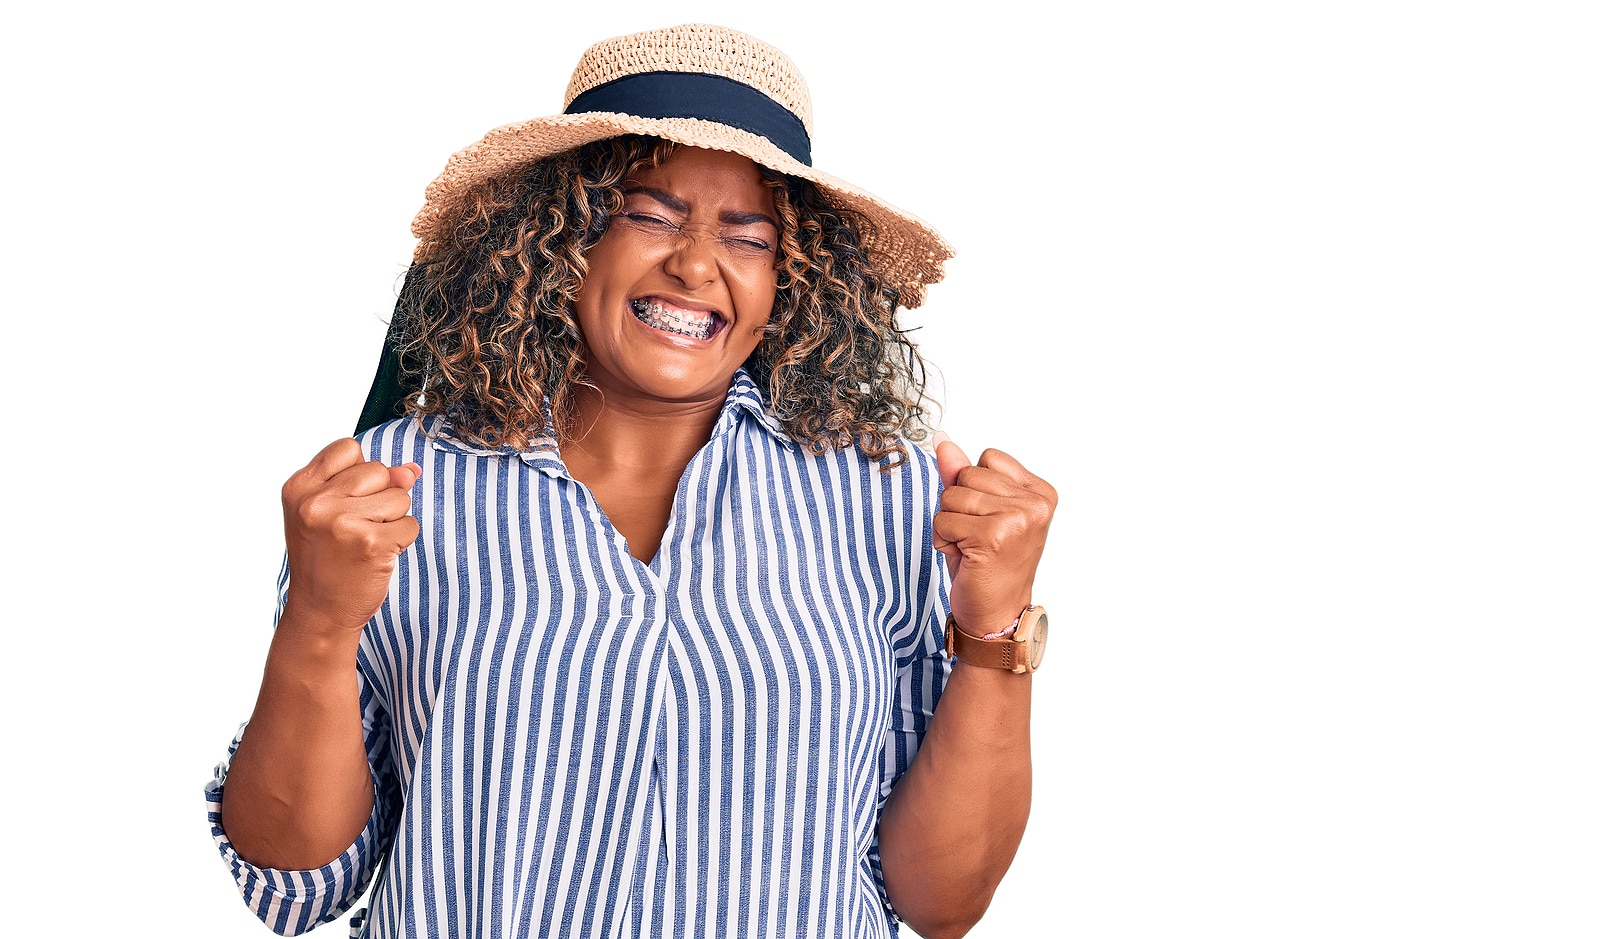 Woman wearing a striped shirt and hat, holding her hands together excited to start SEO services for her private practice therapy business with SEO experts from Simplified SEO Consulting in the United States, UK, Canada, Mexico, Germany, Spain and beyond.